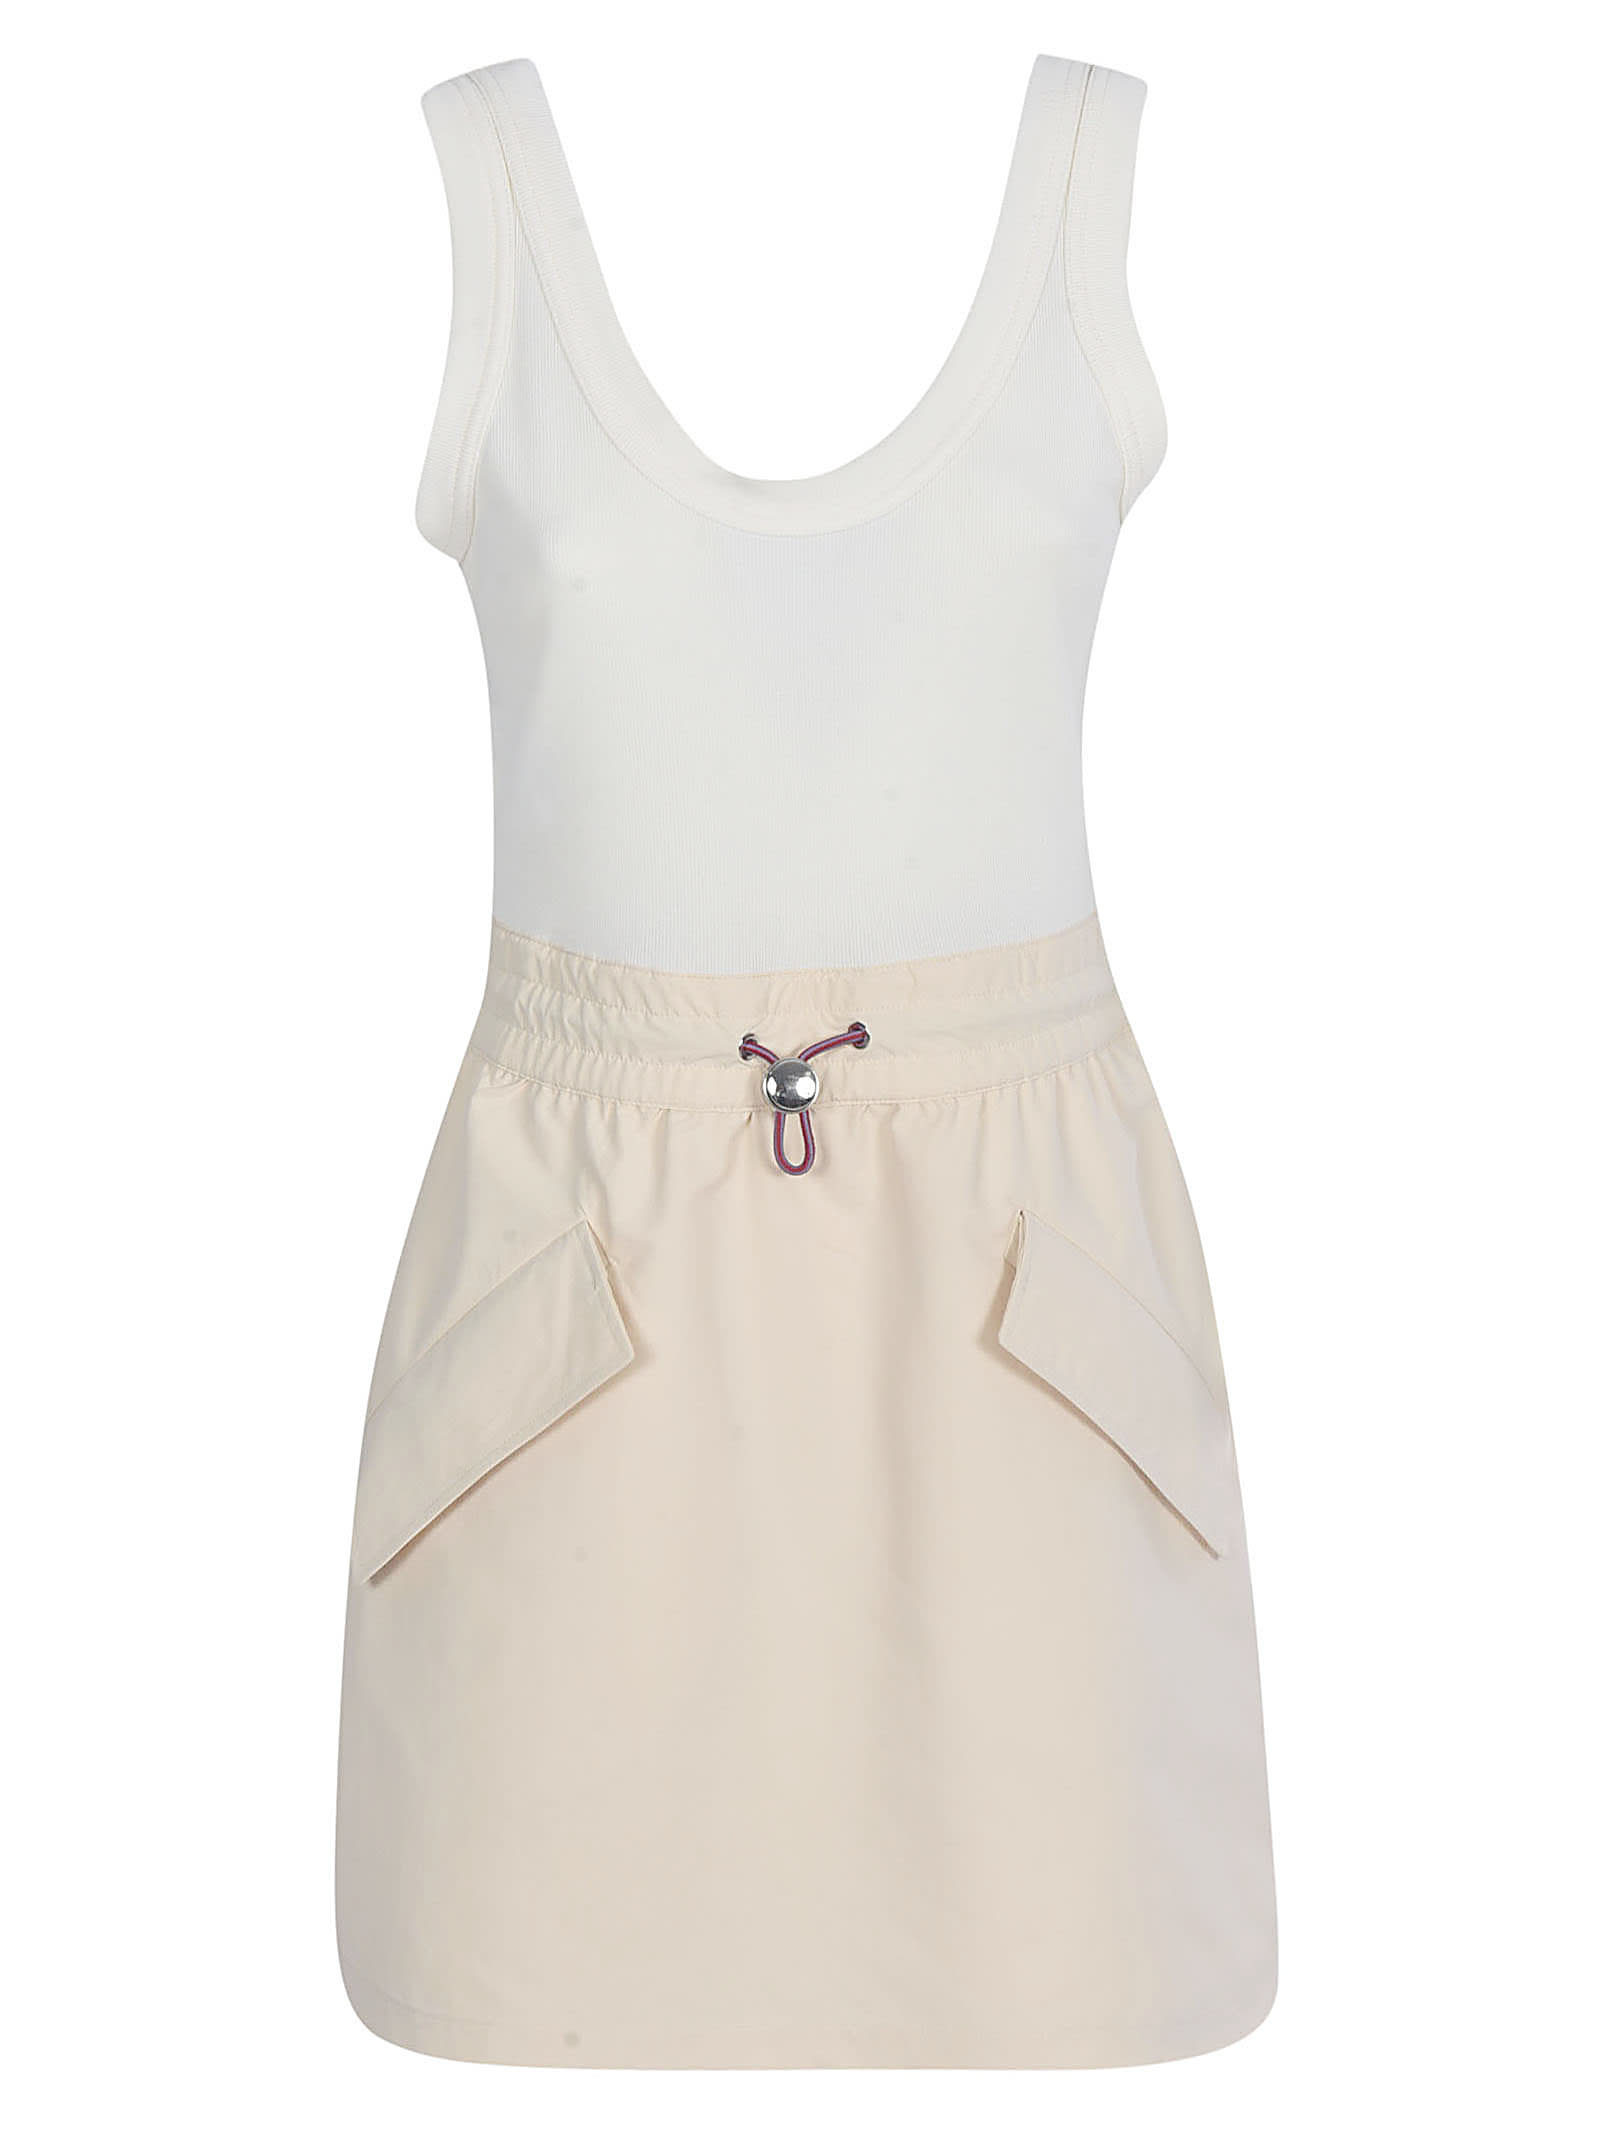 Buy Moncler Genius Side Pocket Detailed Sleeveless Dress online, shop Moncler Genius with free shipping